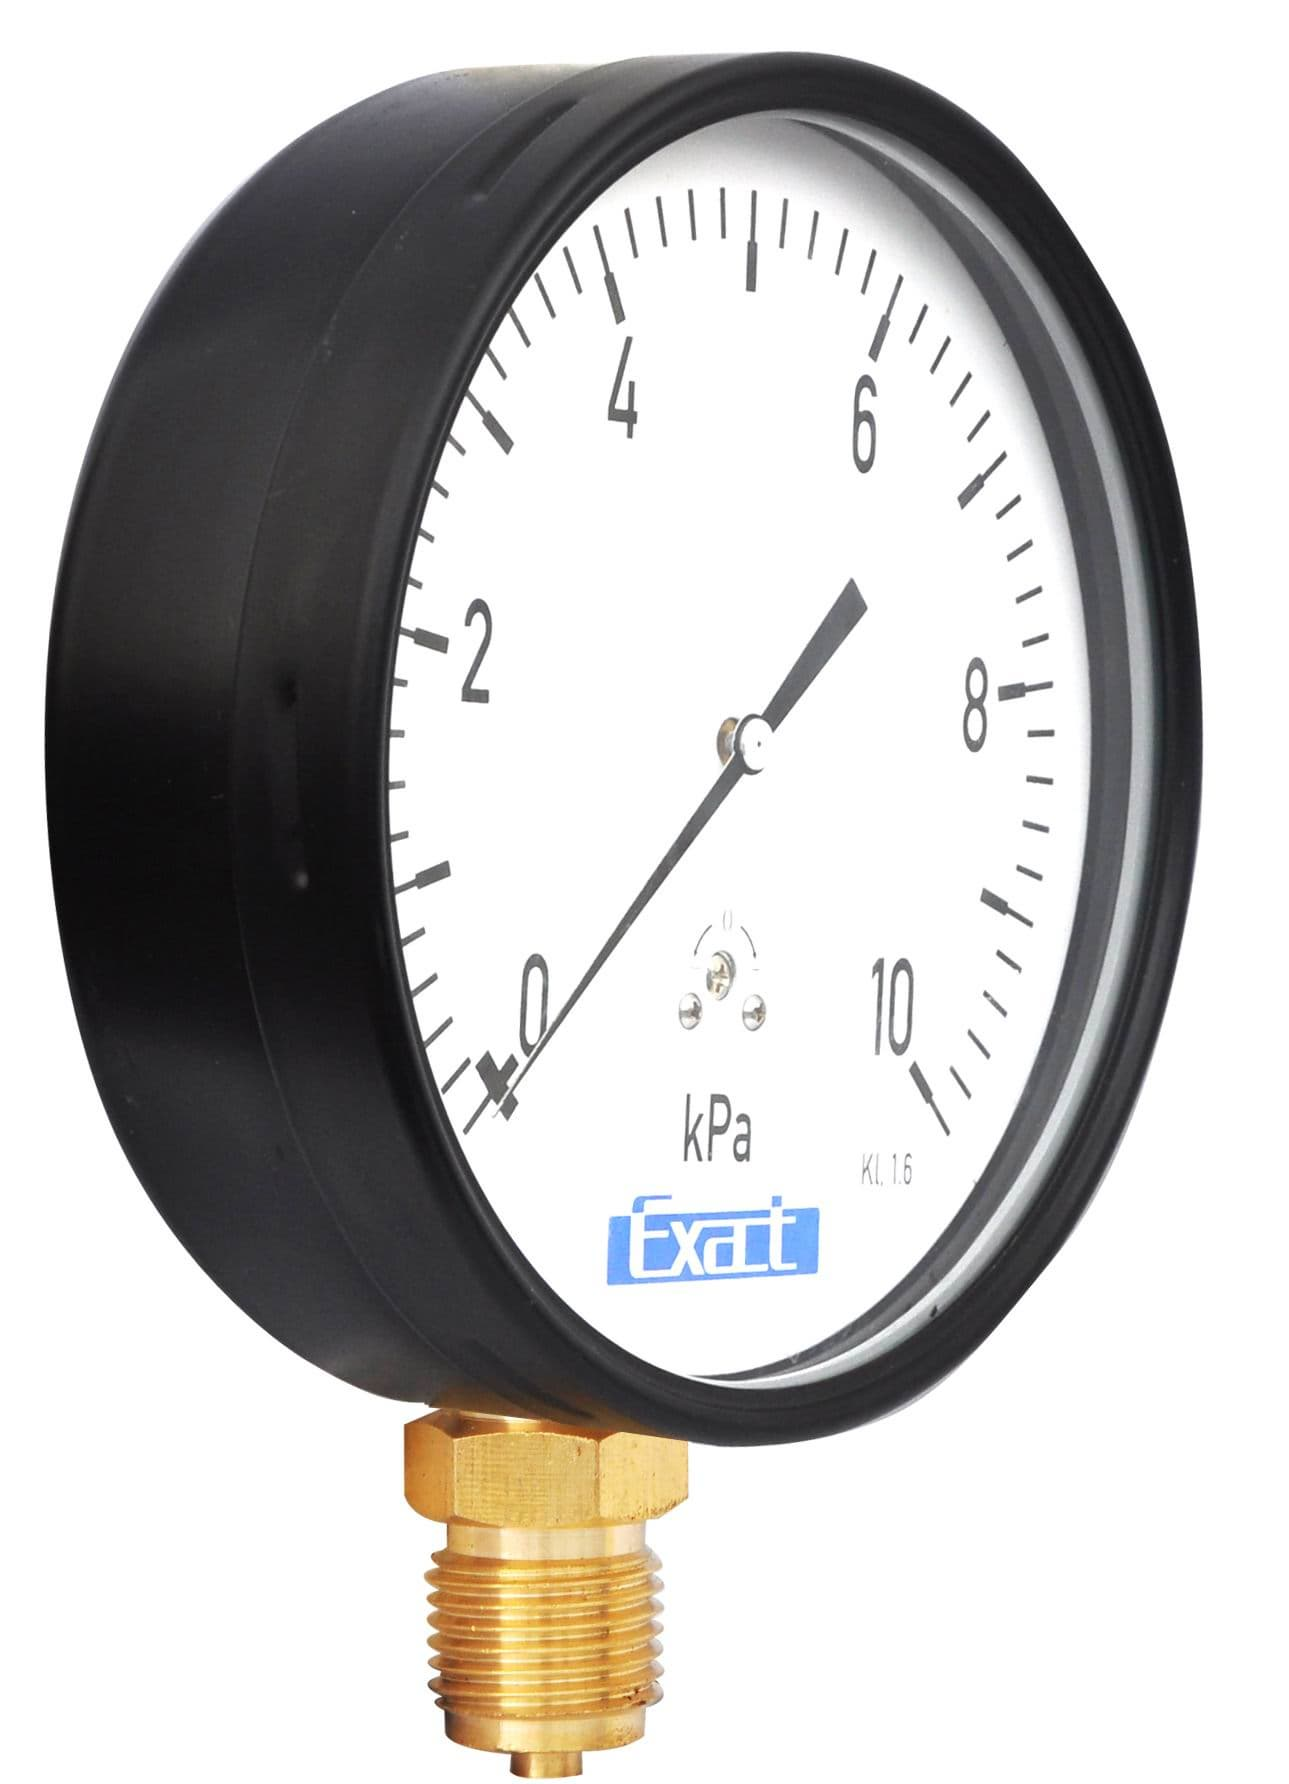 Pressure Measuring Instruments : Capsule pressure gauge ab from exact instrument co ltd